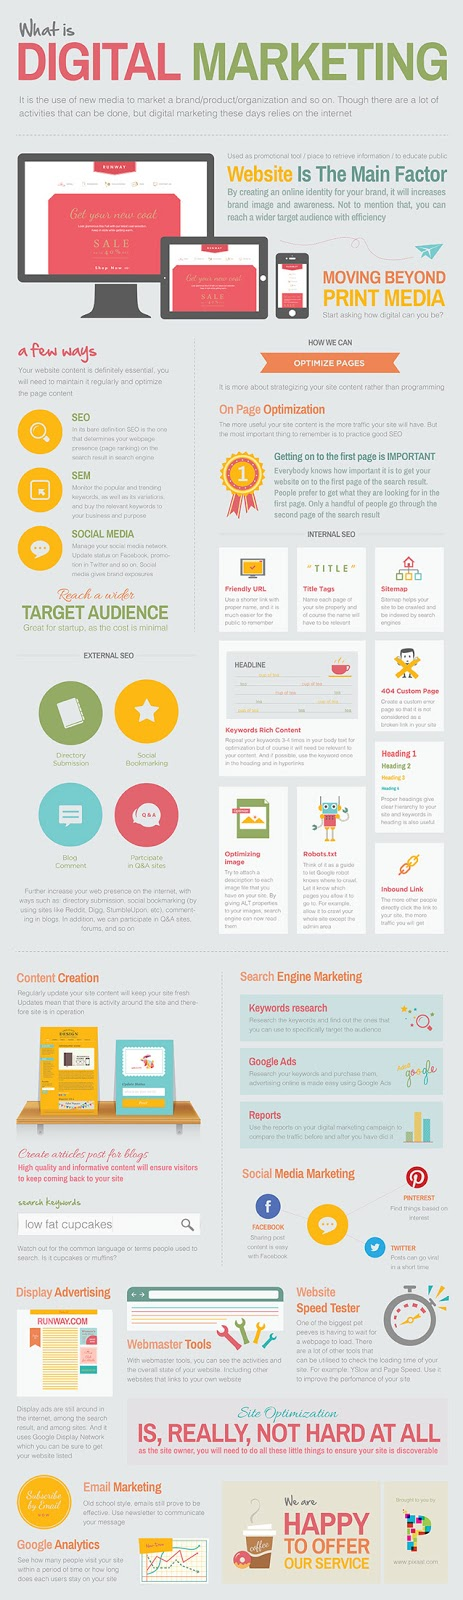 [Image: digital-marketing-infographic.jpg]